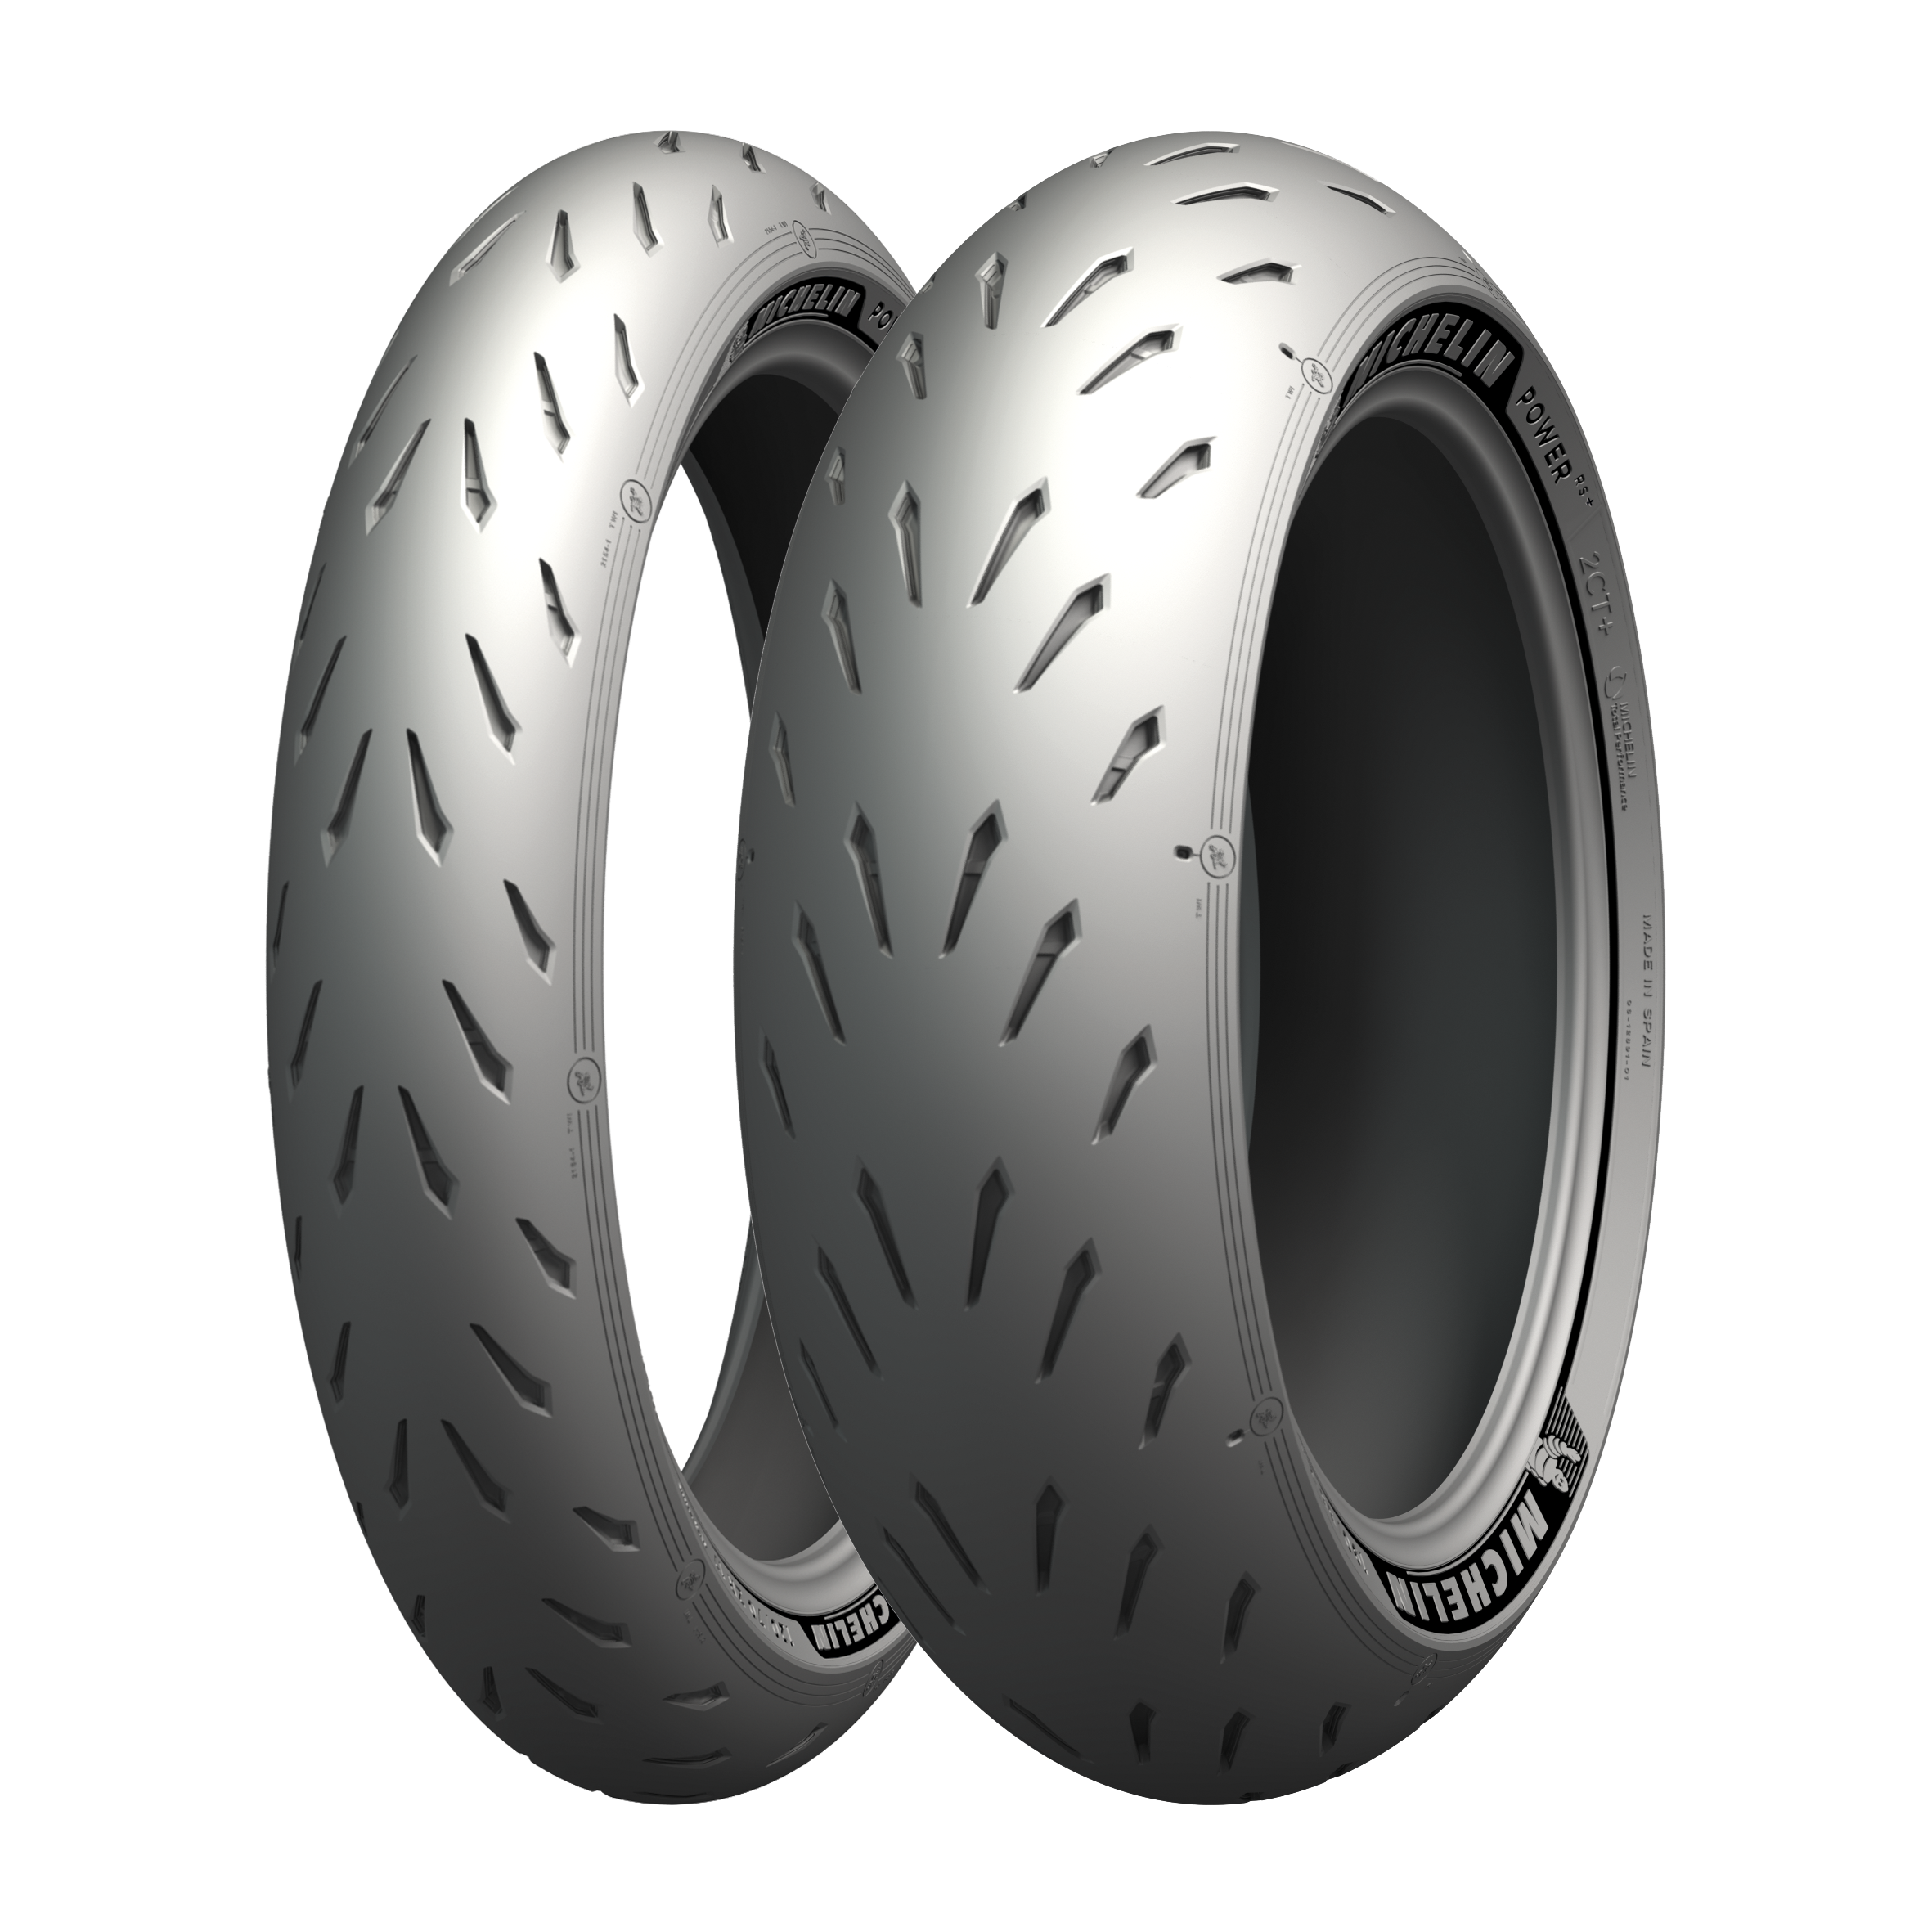 мотошины Michelin Pilot Power RS+ 180/55 R17 73W